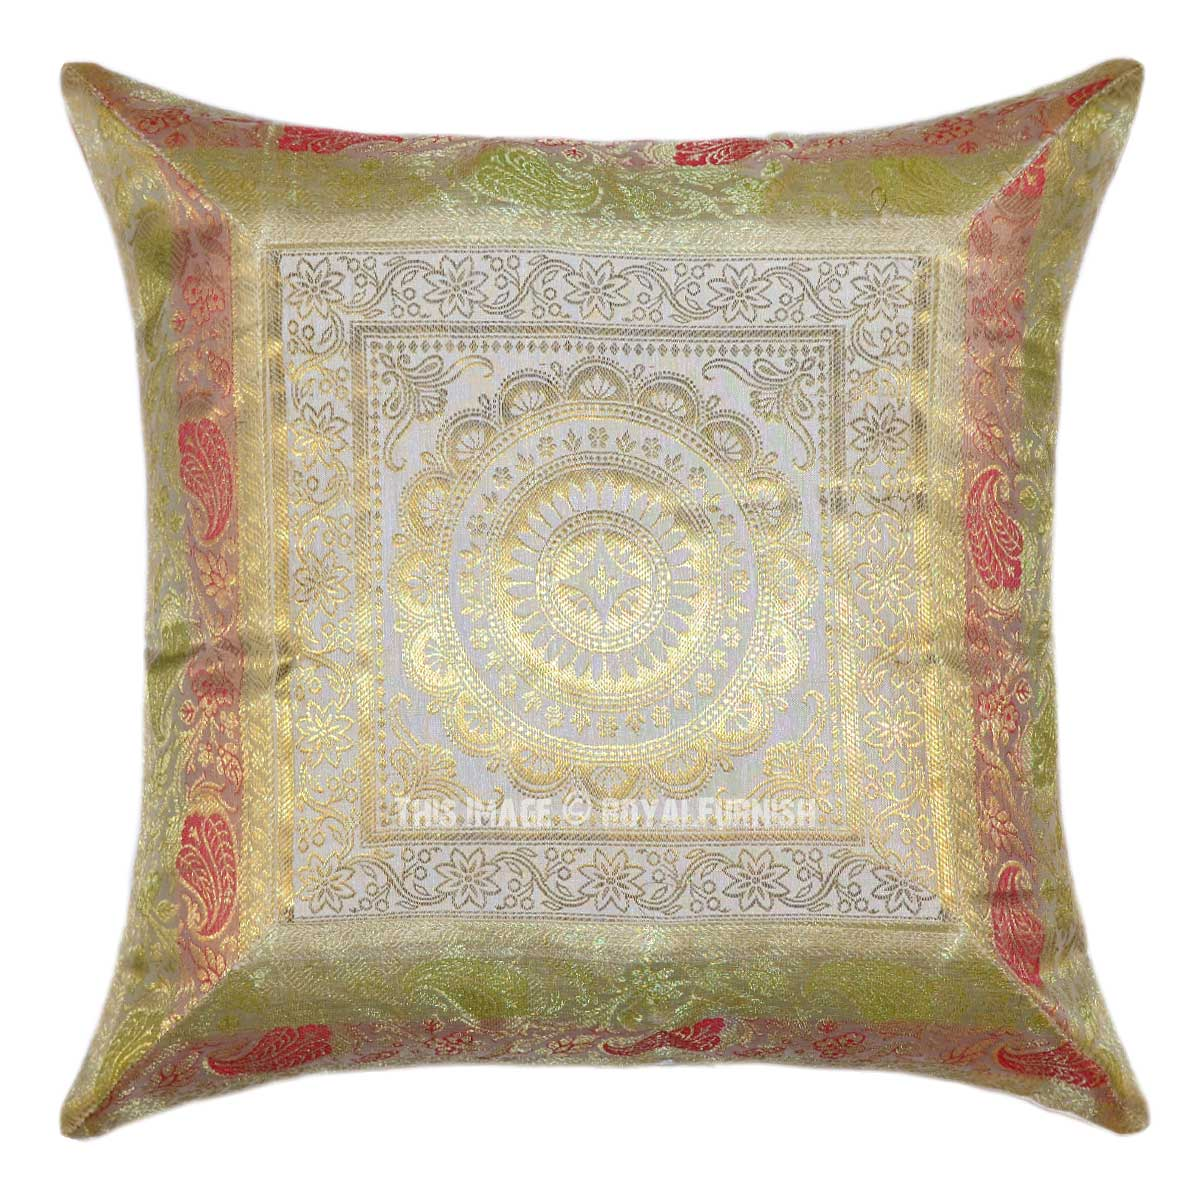 Throw Me A Pillow Coupon Code : Indian Silk Brocade Pillows & Sari Pillows - Royal Furnish